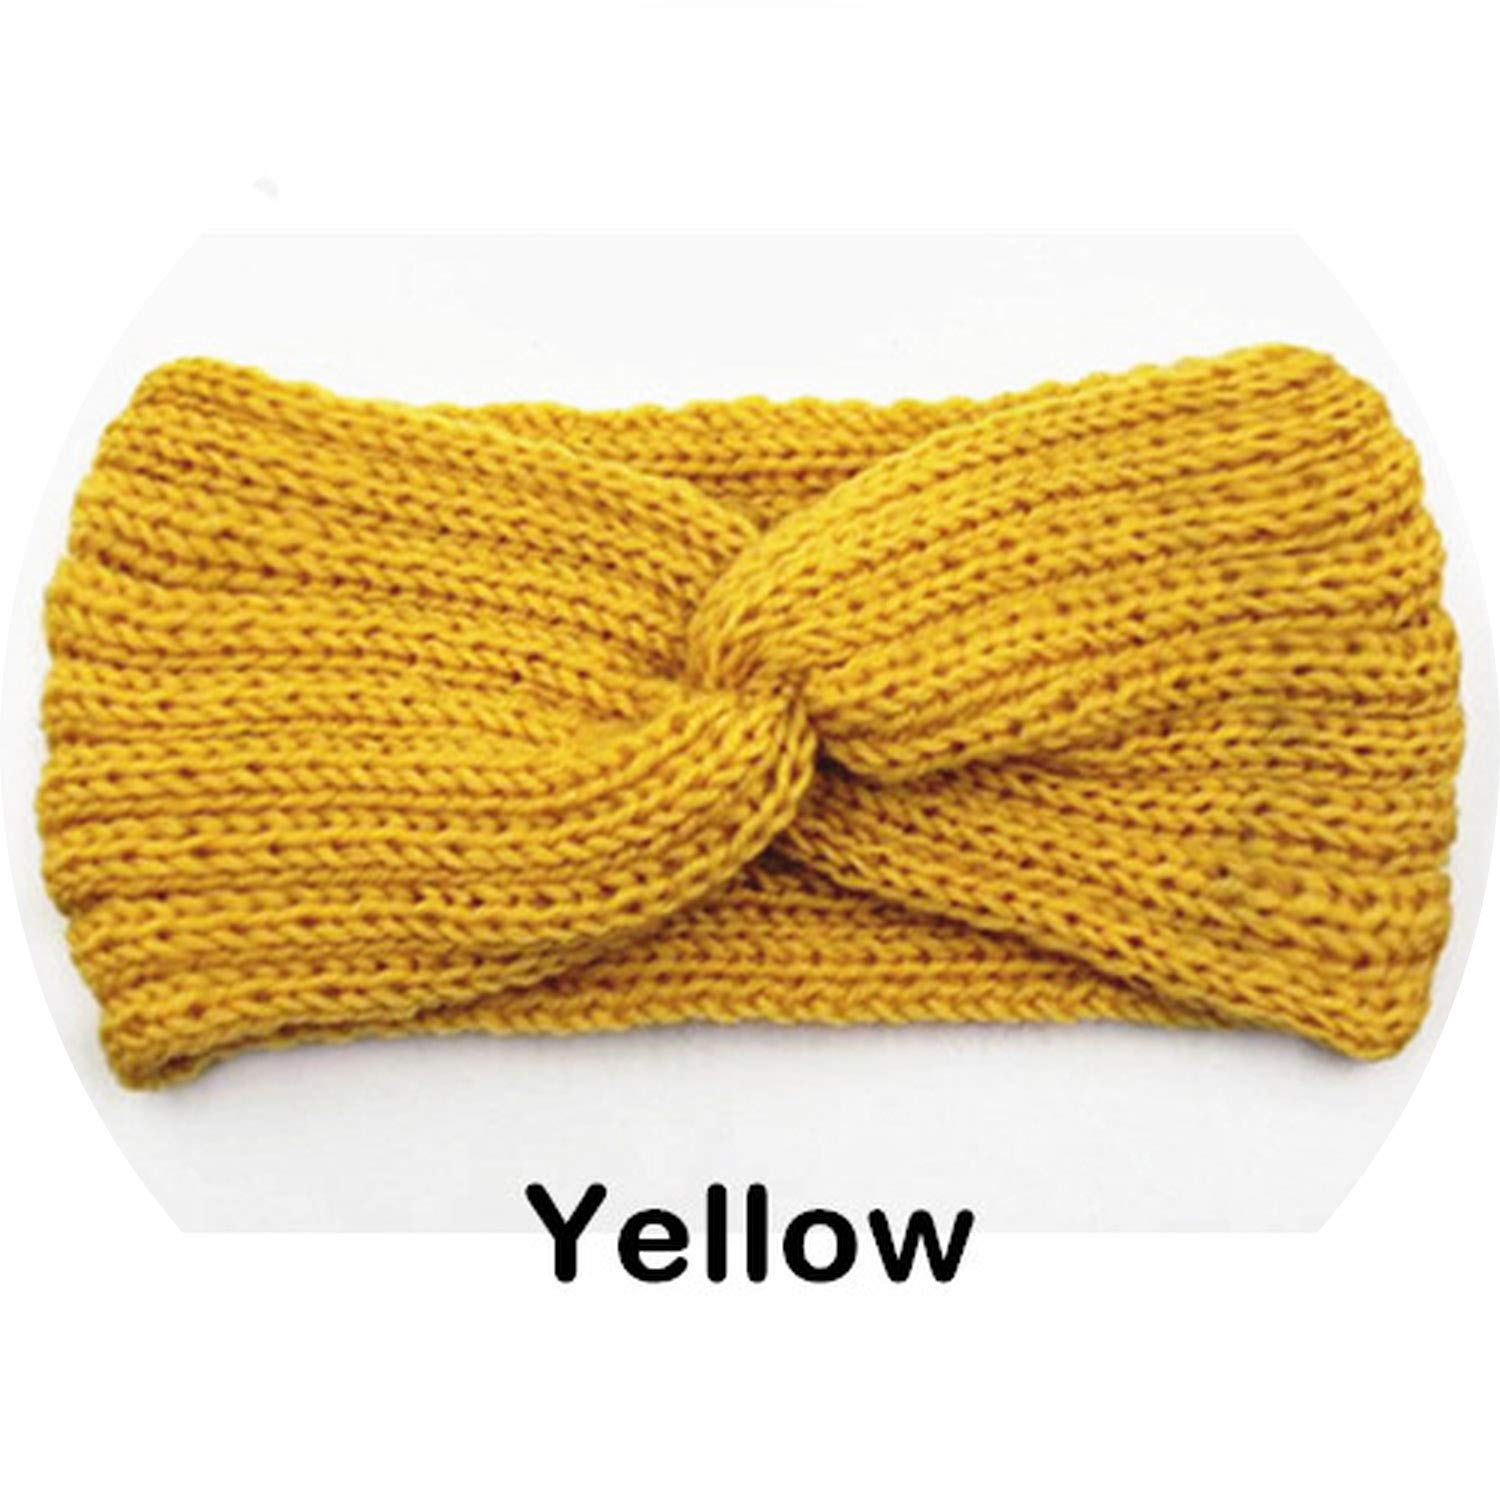 TENDYCOCO Warm Knitted Twist Hairband Simple Winter Ear Muffs Autumn Headband Hair Accessories for Girls Women Ladies